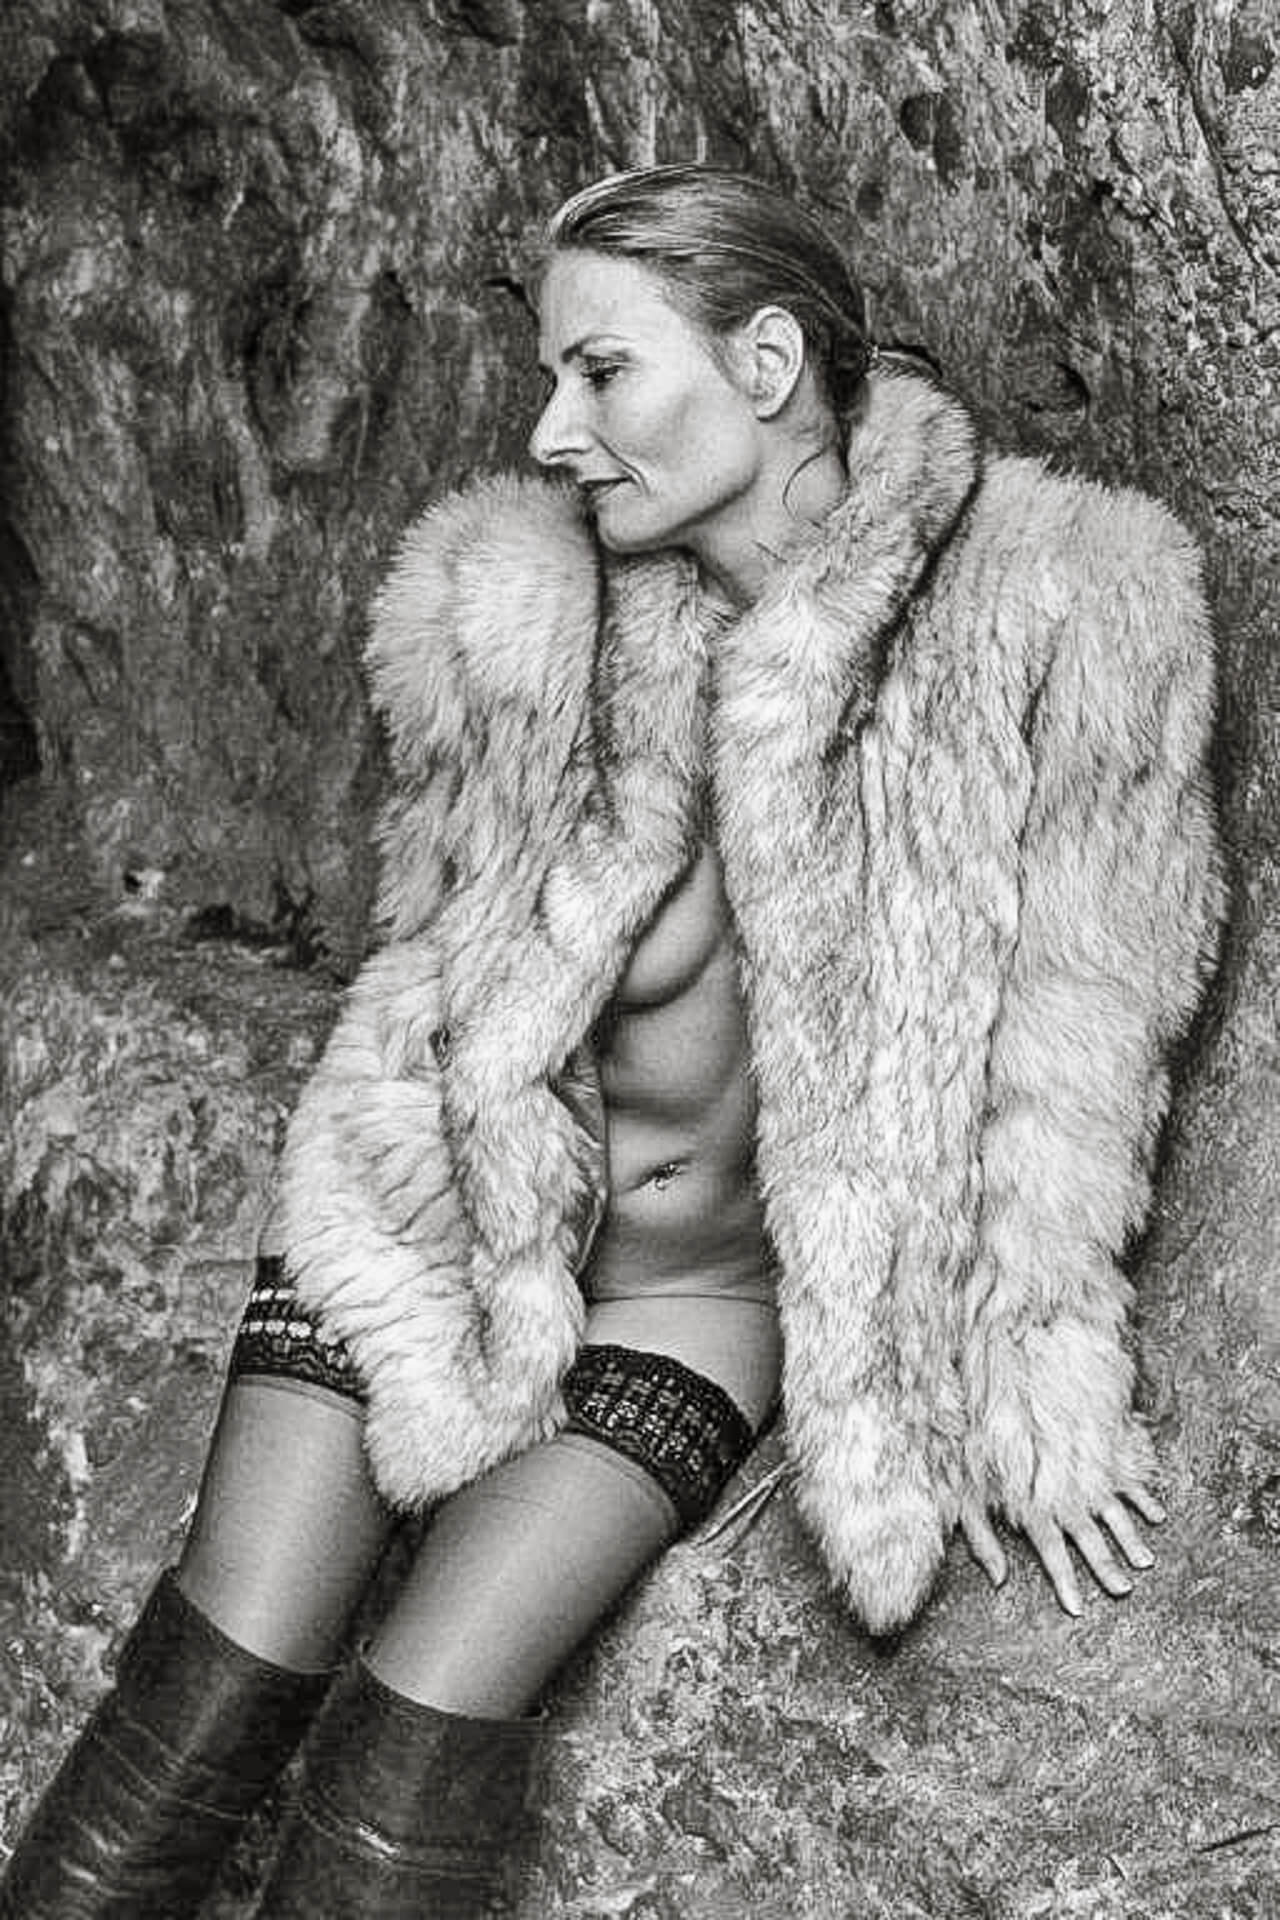 Seen in a 3/4 length black & white image is Liz. Set against a natural rock background, Liz sits on a small ledge. She wears a fake fur coat, closed at the neck but open at the waist, black stockings, and a pair of knee high black leather boots. Liz's body is facing the camera. with her head is turned to her right shoulder, as she looks slightly down. Her left hand is placed flat on the ledge.